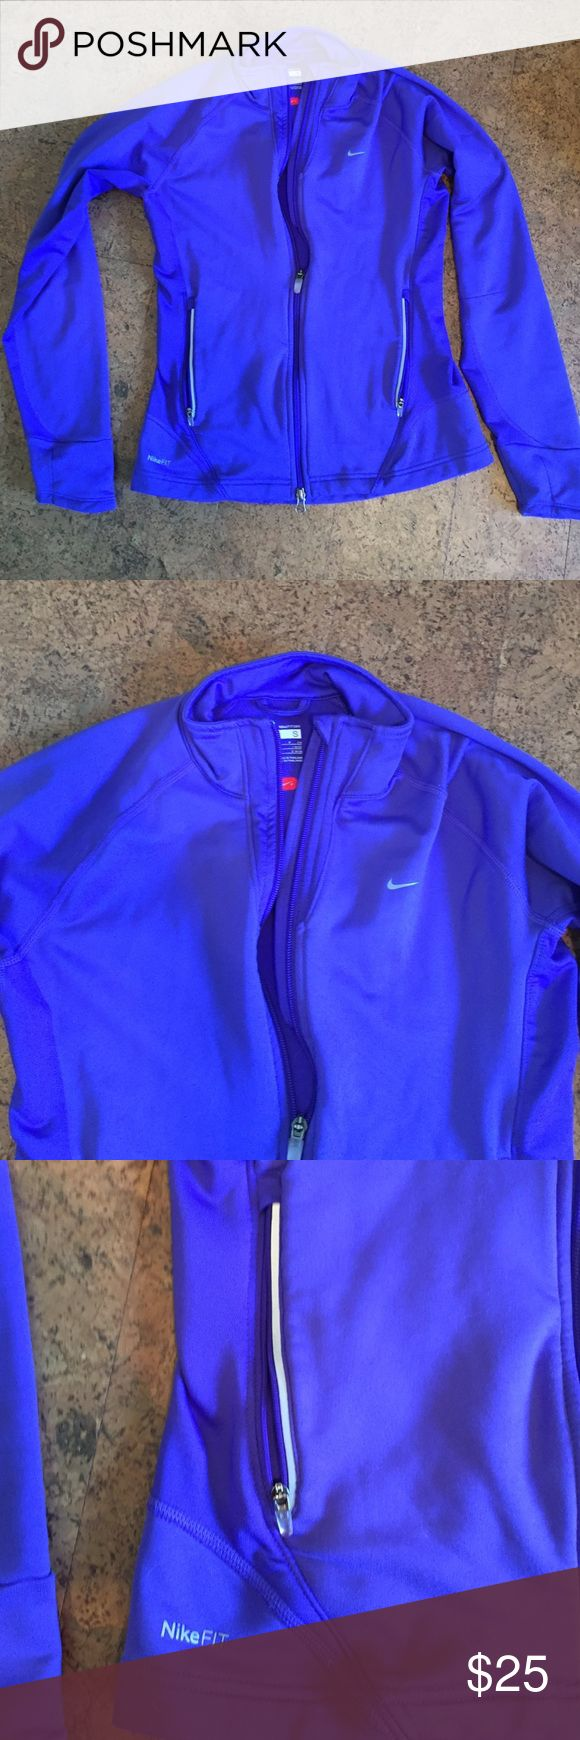 Purple women's Nike zip up Purple Nike zips up. Women's small. Zip up pockets and fleece inside. Nike Tops Sweatshirts & Hoodies